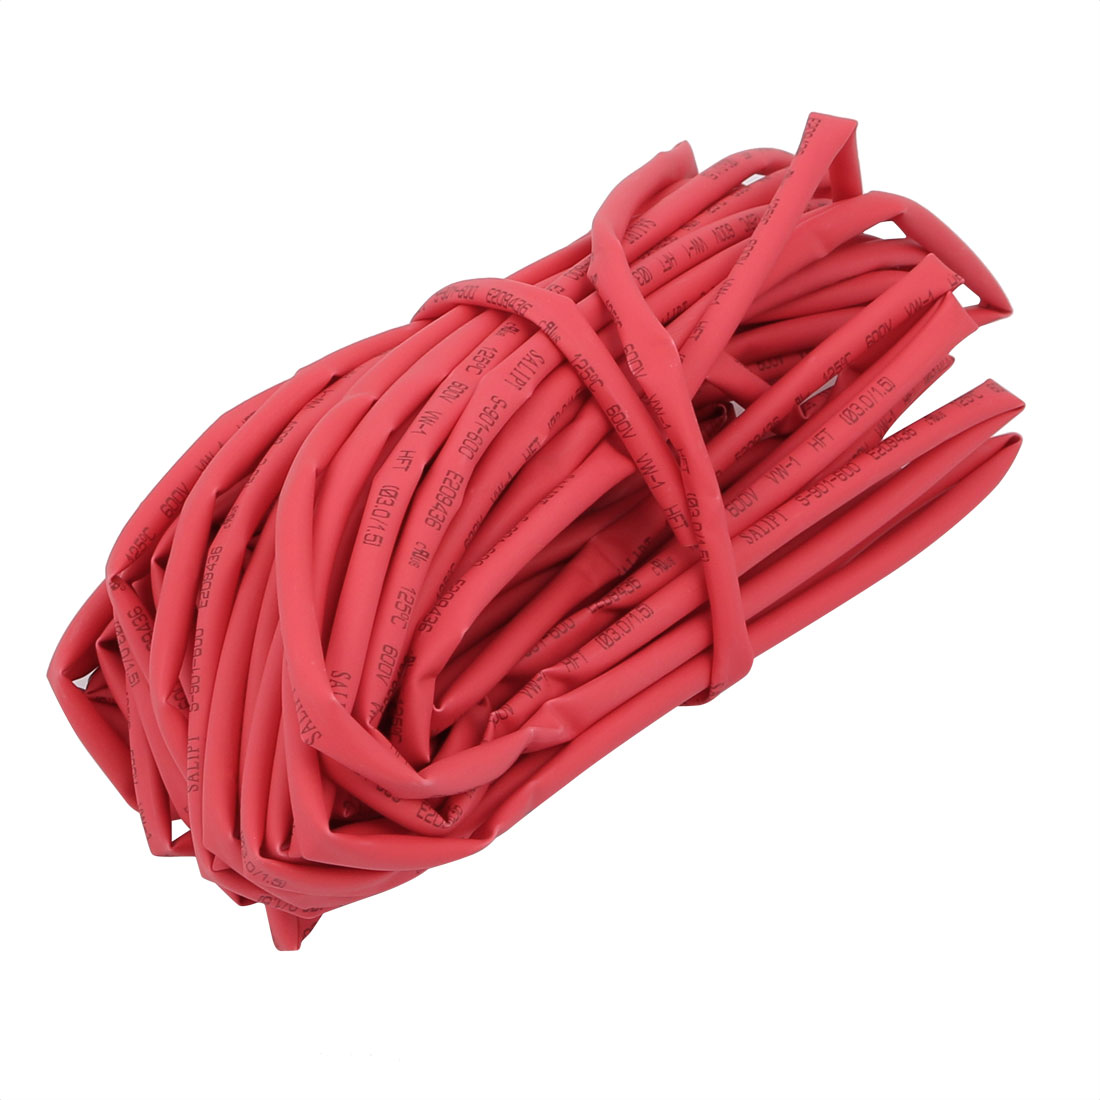 10M Long 3mm Inner Dia. Polyolefin Heat Shrinkable Tube Red for Wire Repairing